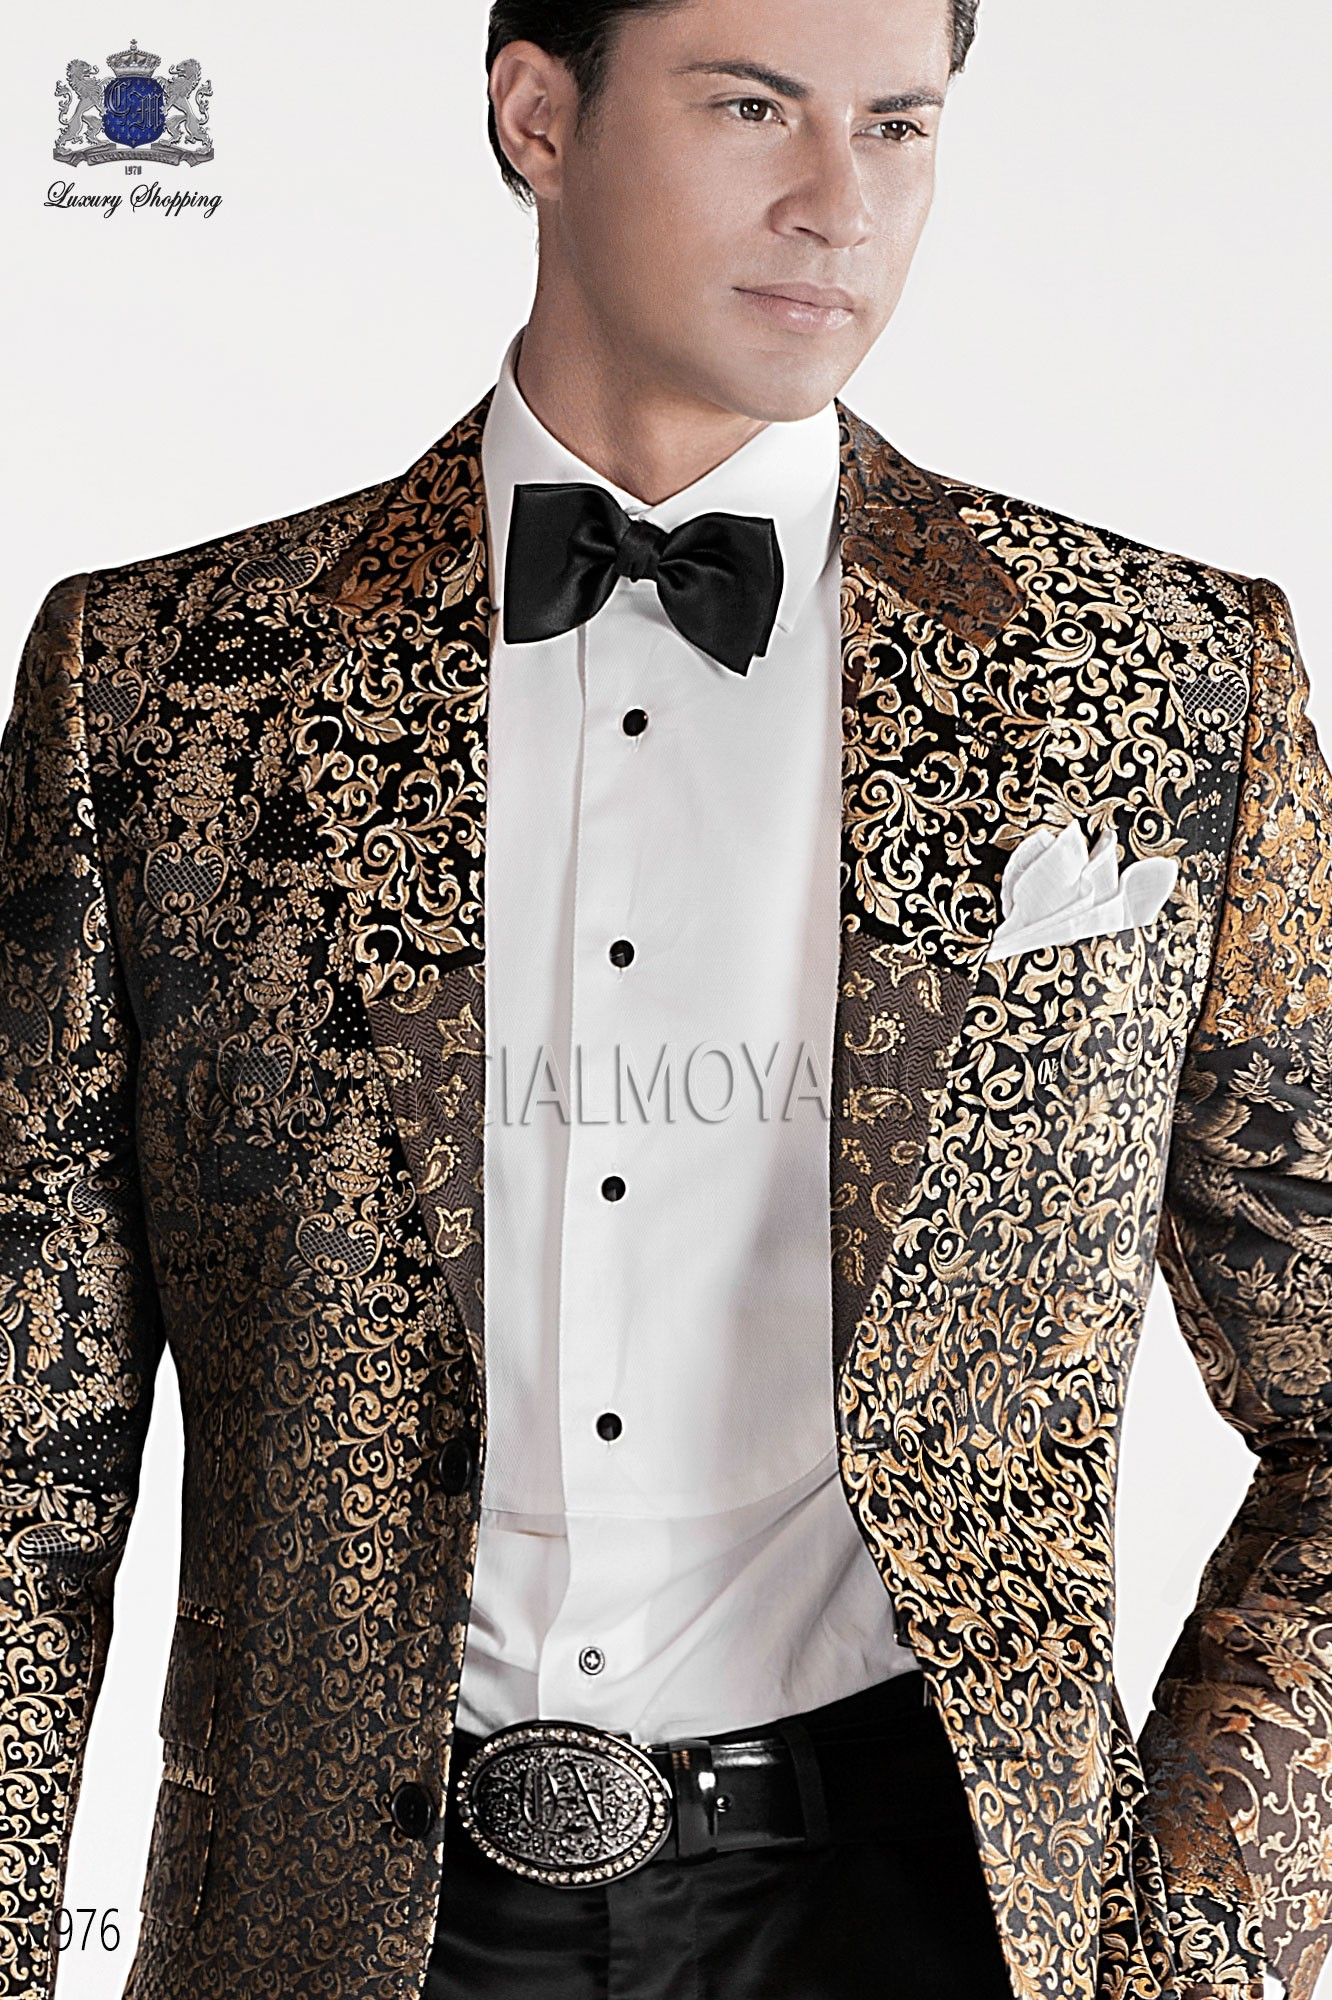 Italian emotion patchwork men wedding suit, model: 976 Ottavio Nuccio Gala Emotion Collection